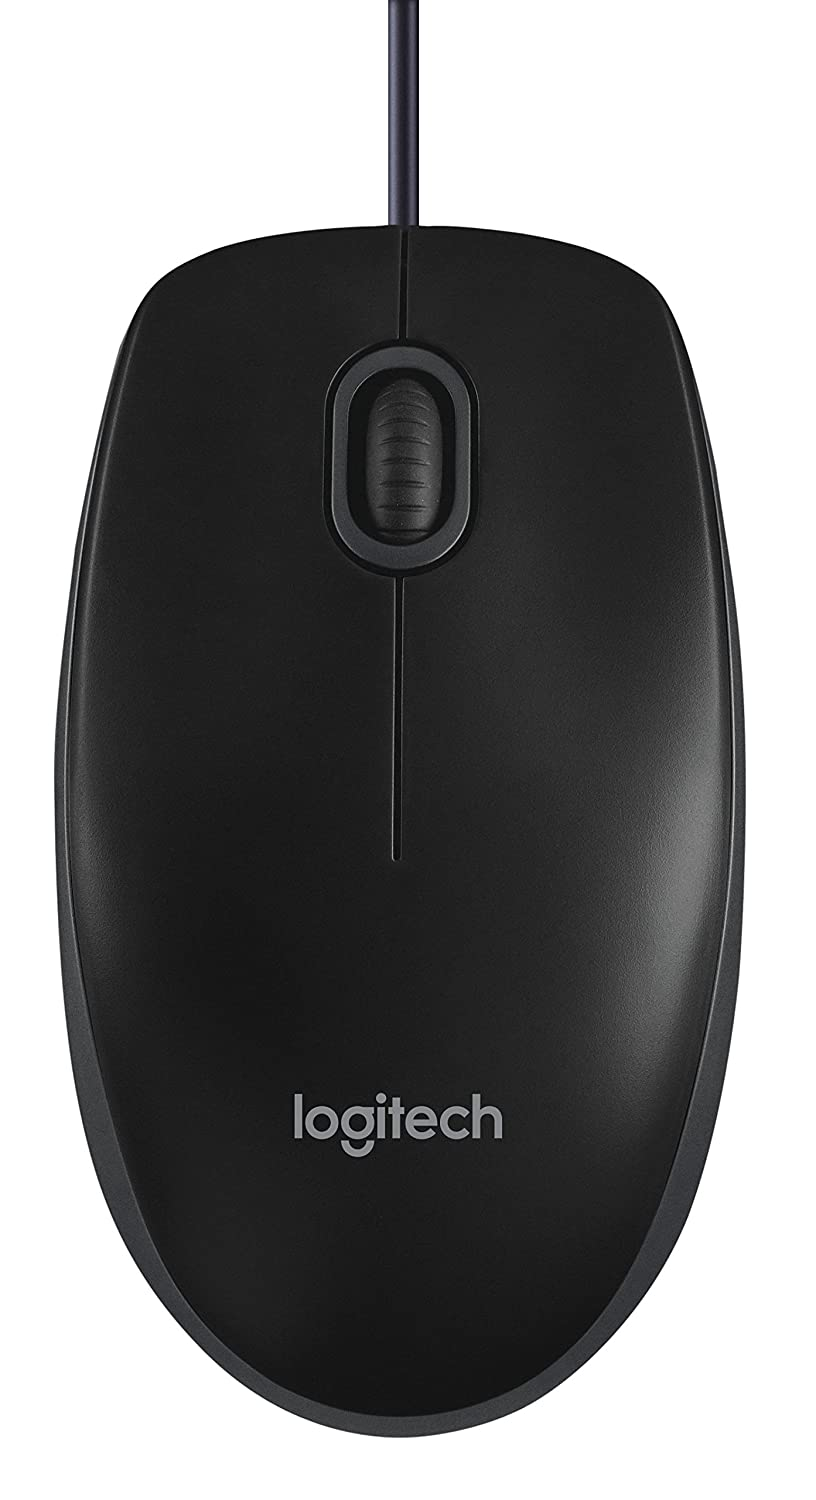 Buy Logitech B100 Optical Mouse Black Online At Low Parts Of A Computer Diagram For Kids Related Prices In India Reviews Ratings